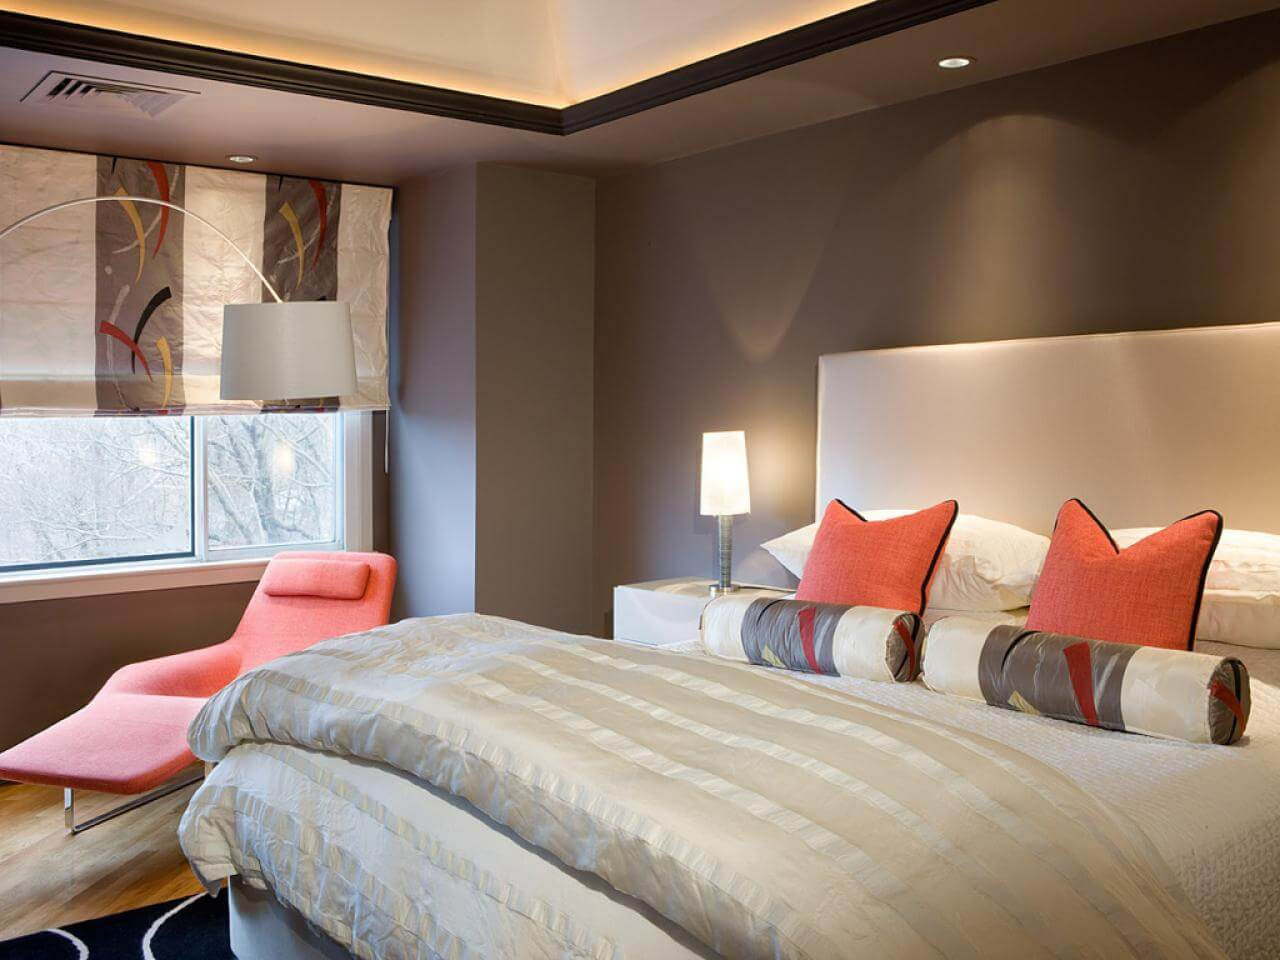 Color Ideas For Bedroom  20 Best Color Ideas for Bedrooms 2018 Interior